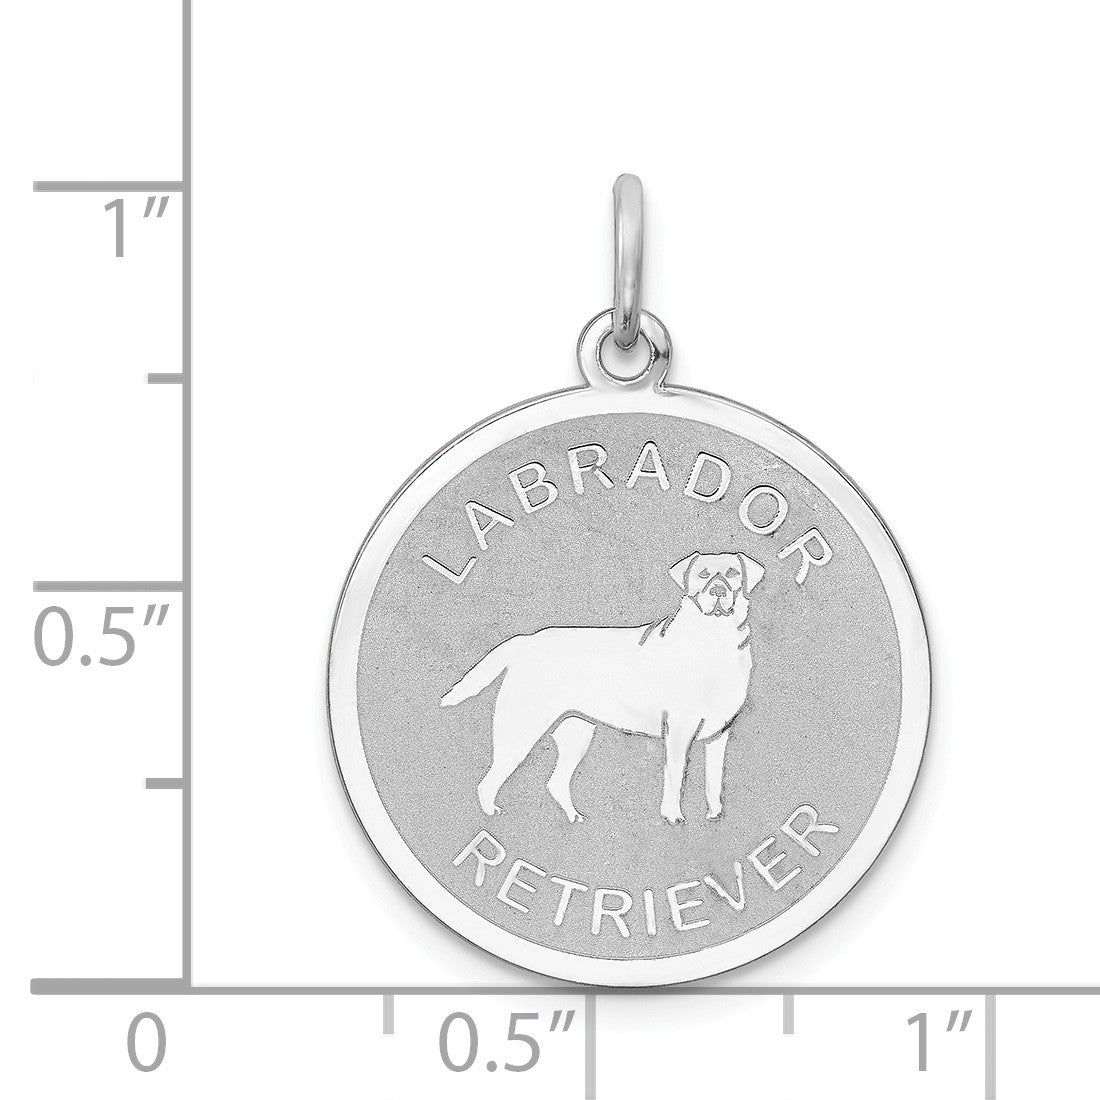 Alternate view of the Sterling Silver Laser Etched Labrador Retriever Dog Pendant, 19mm by The Black Bow Jewelry Co.